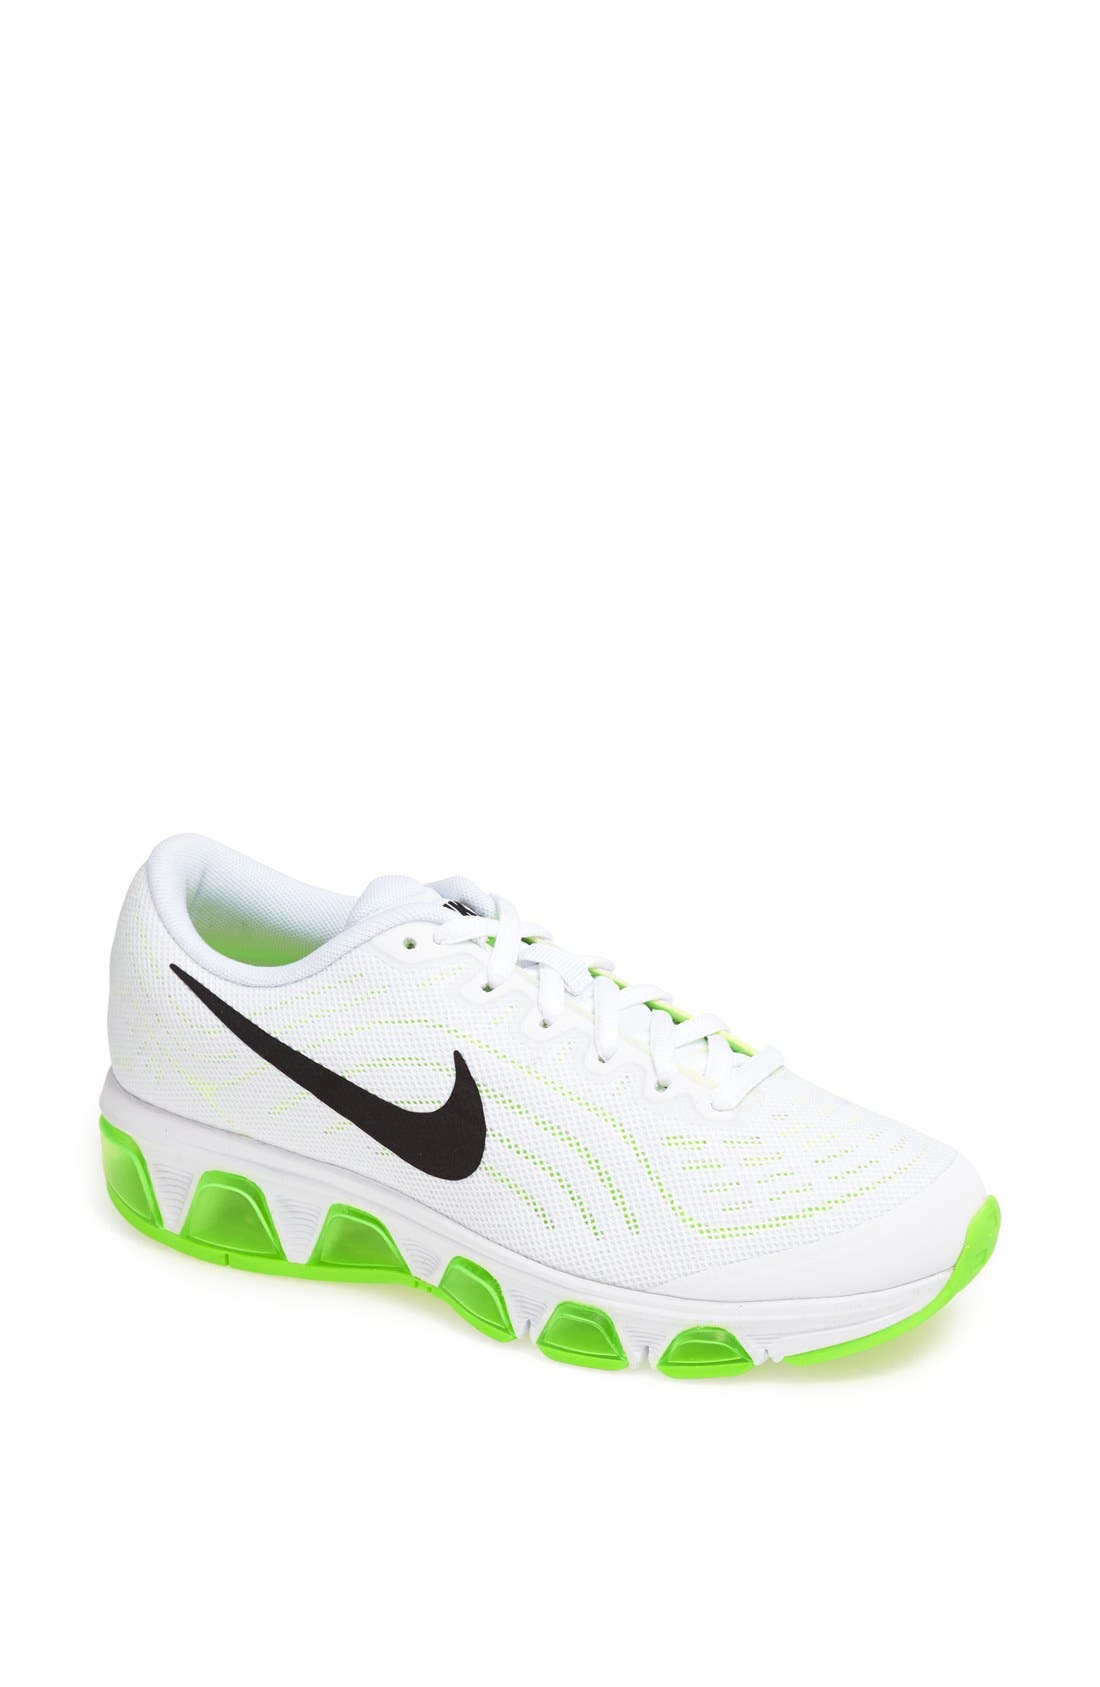 Main Image - Nike 'Air Max Tailwind 6' Running Shoe (Women)